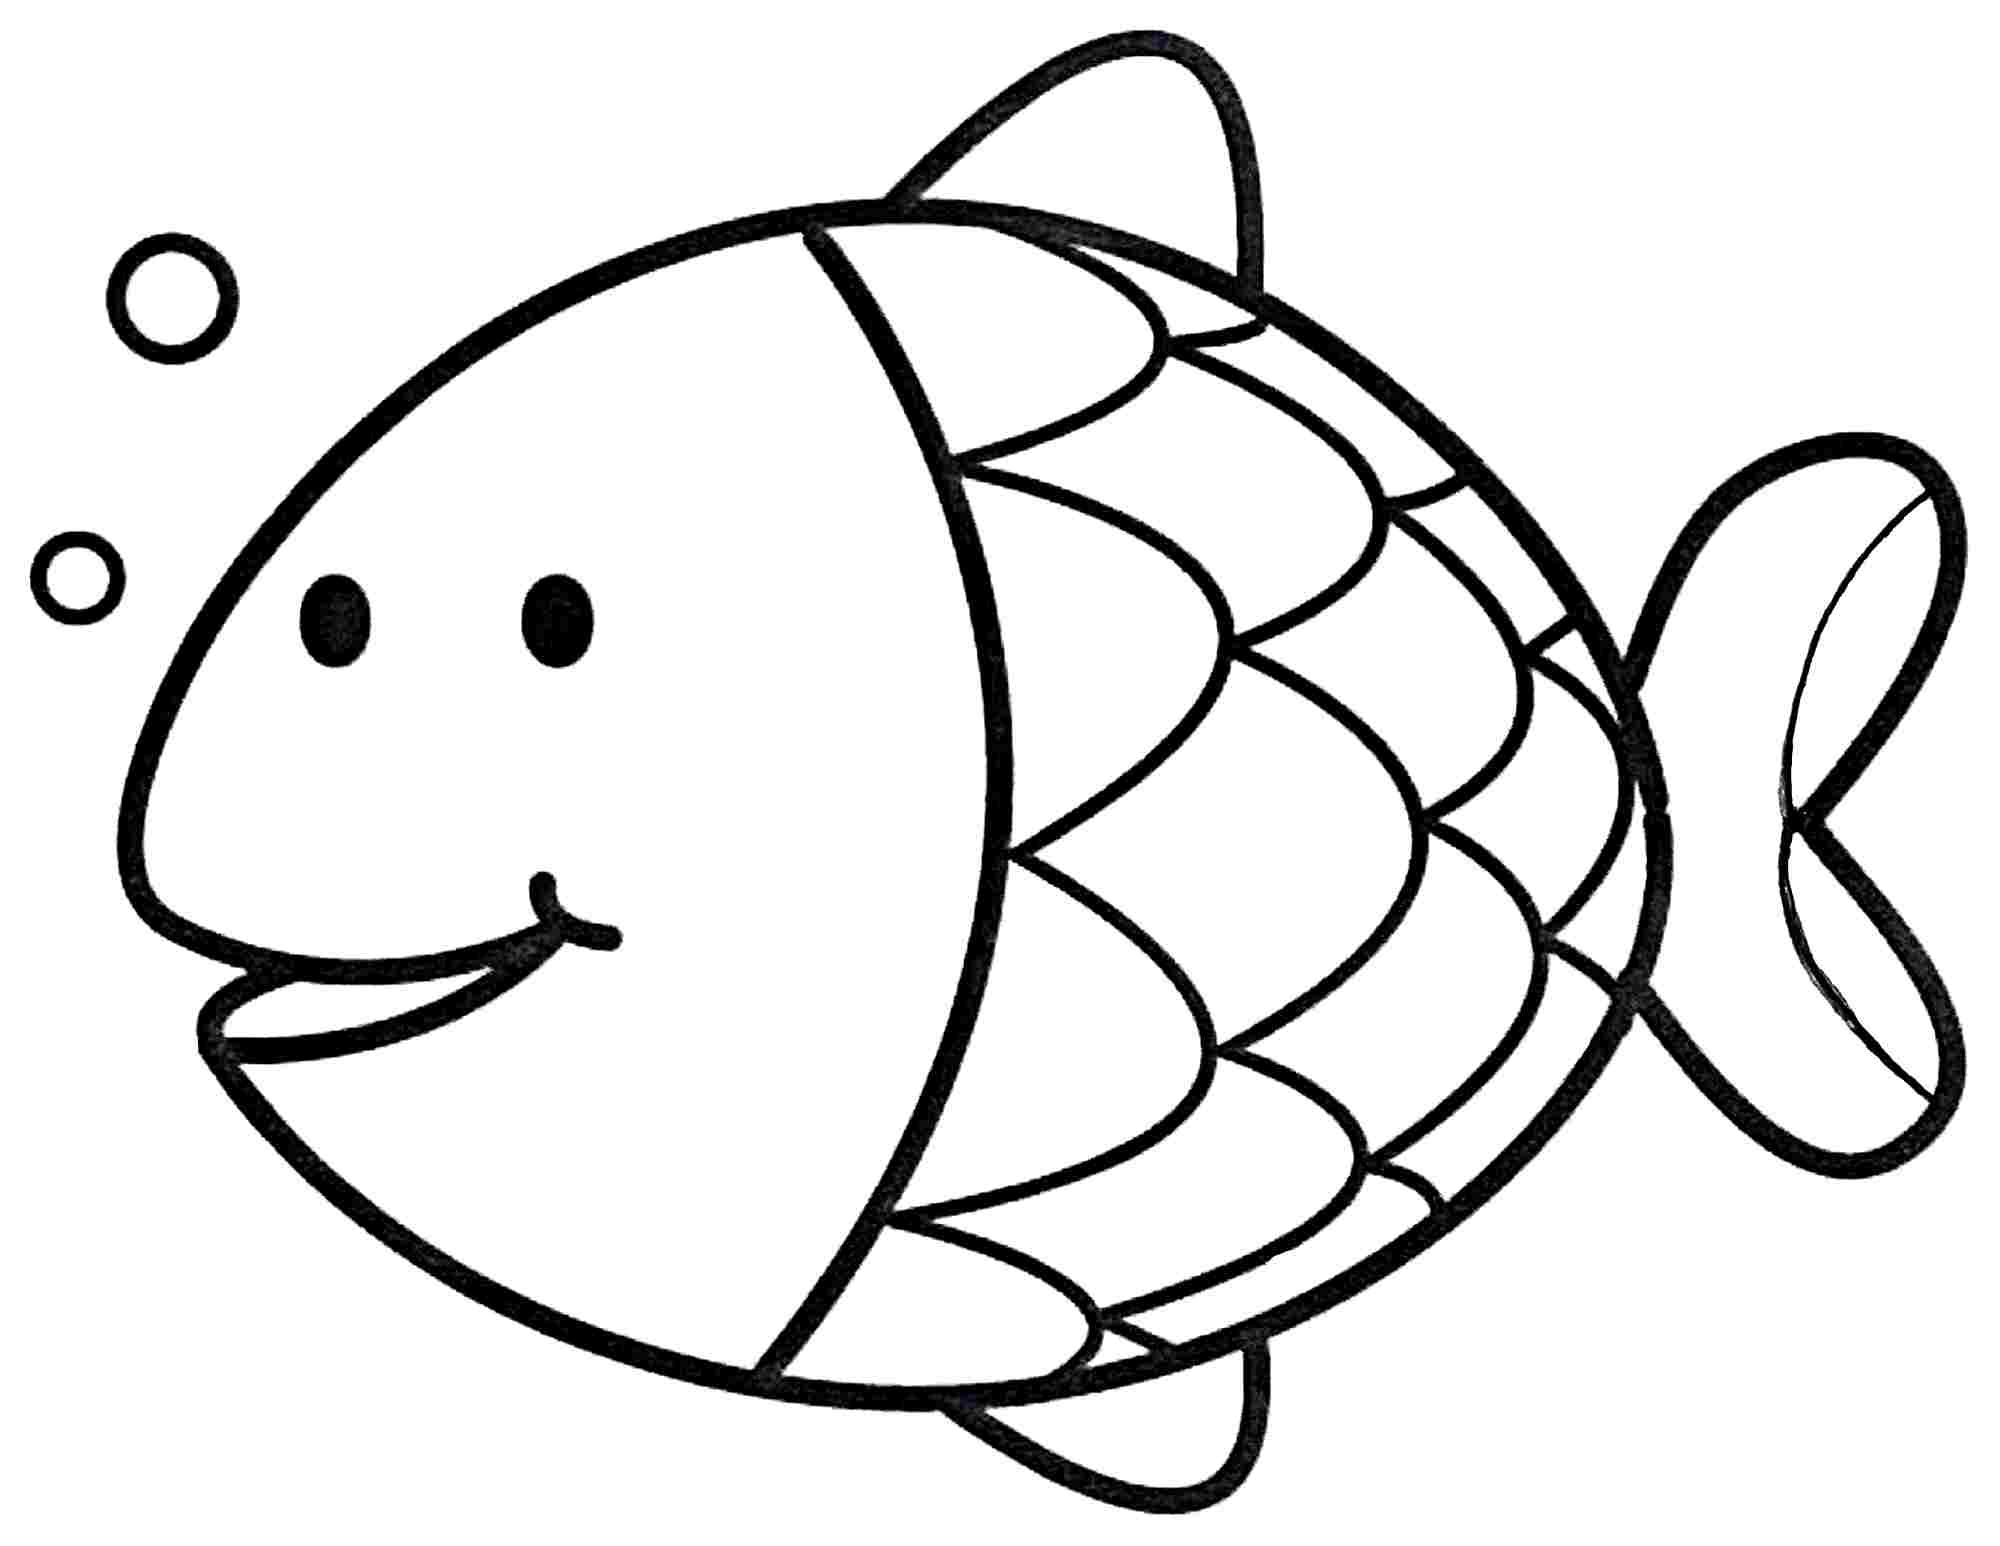 Coloring Pages For Kids To Print Out Coloring Pages Coloring Free For Toddlers Kindergarten Sheets Kids